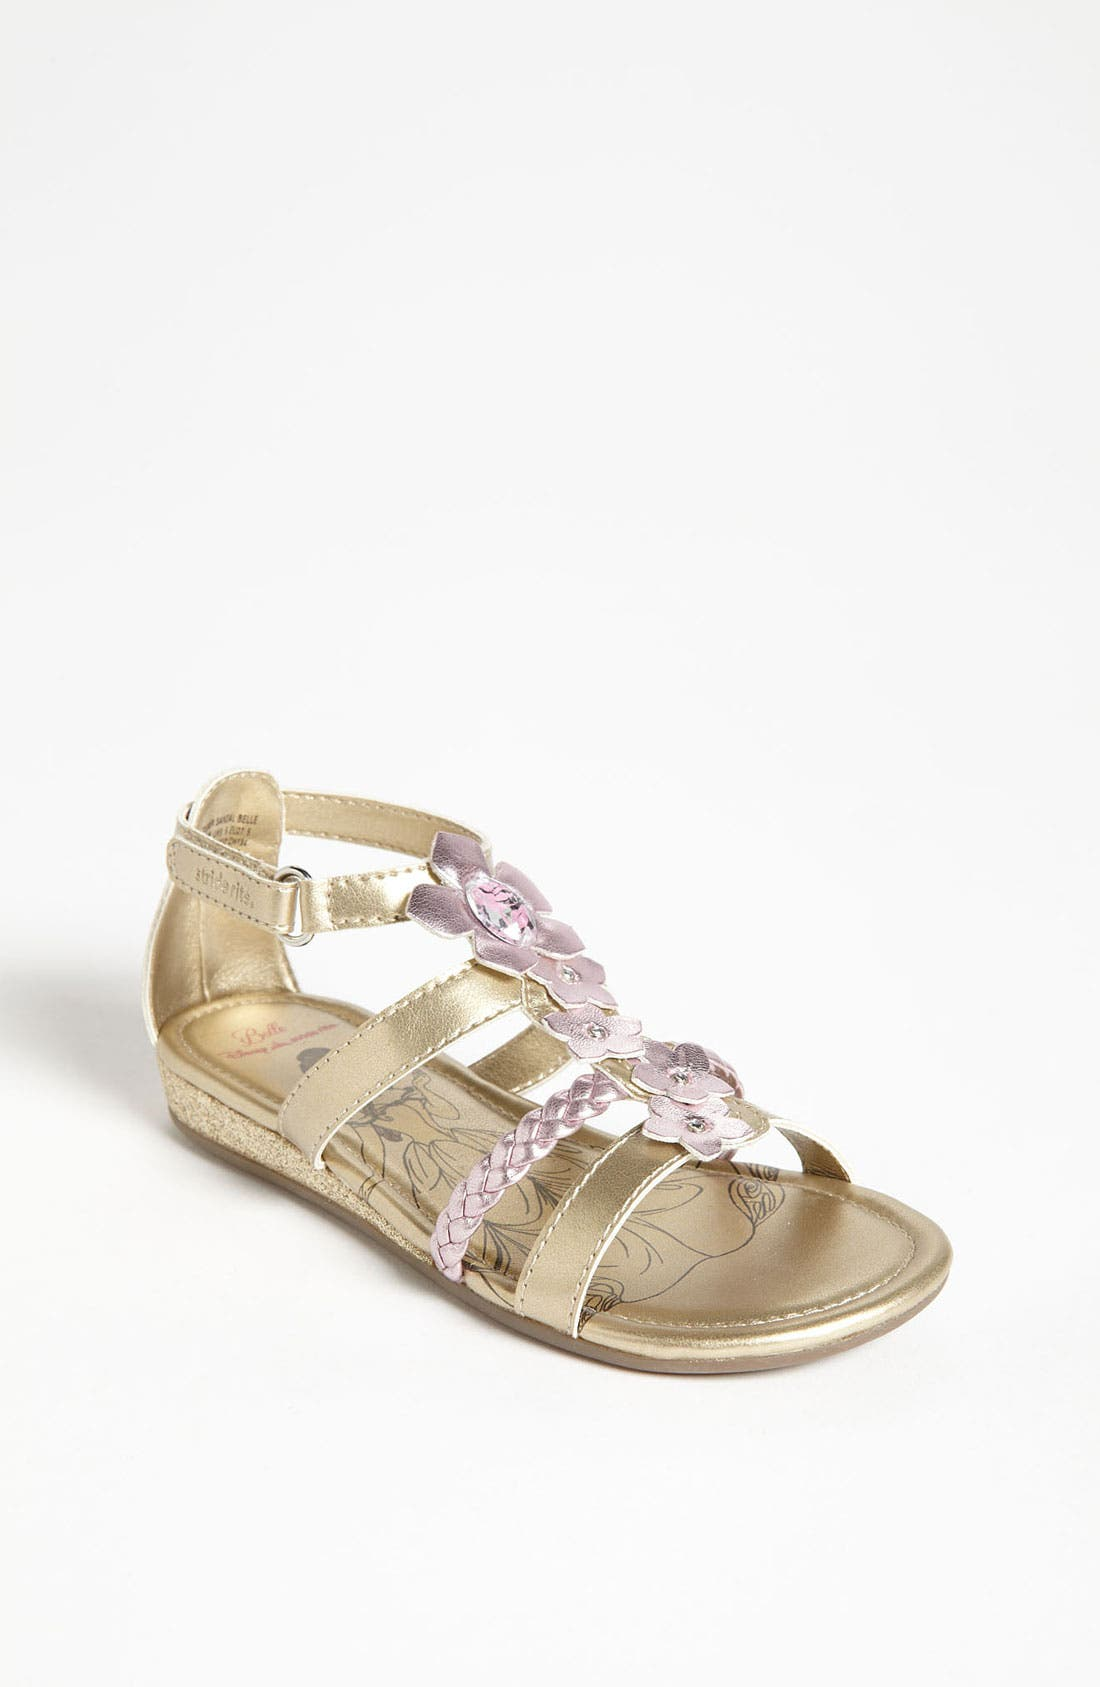 Main Image - Stride Rite 'Disney™ - Belle' Sandal (Toddler)